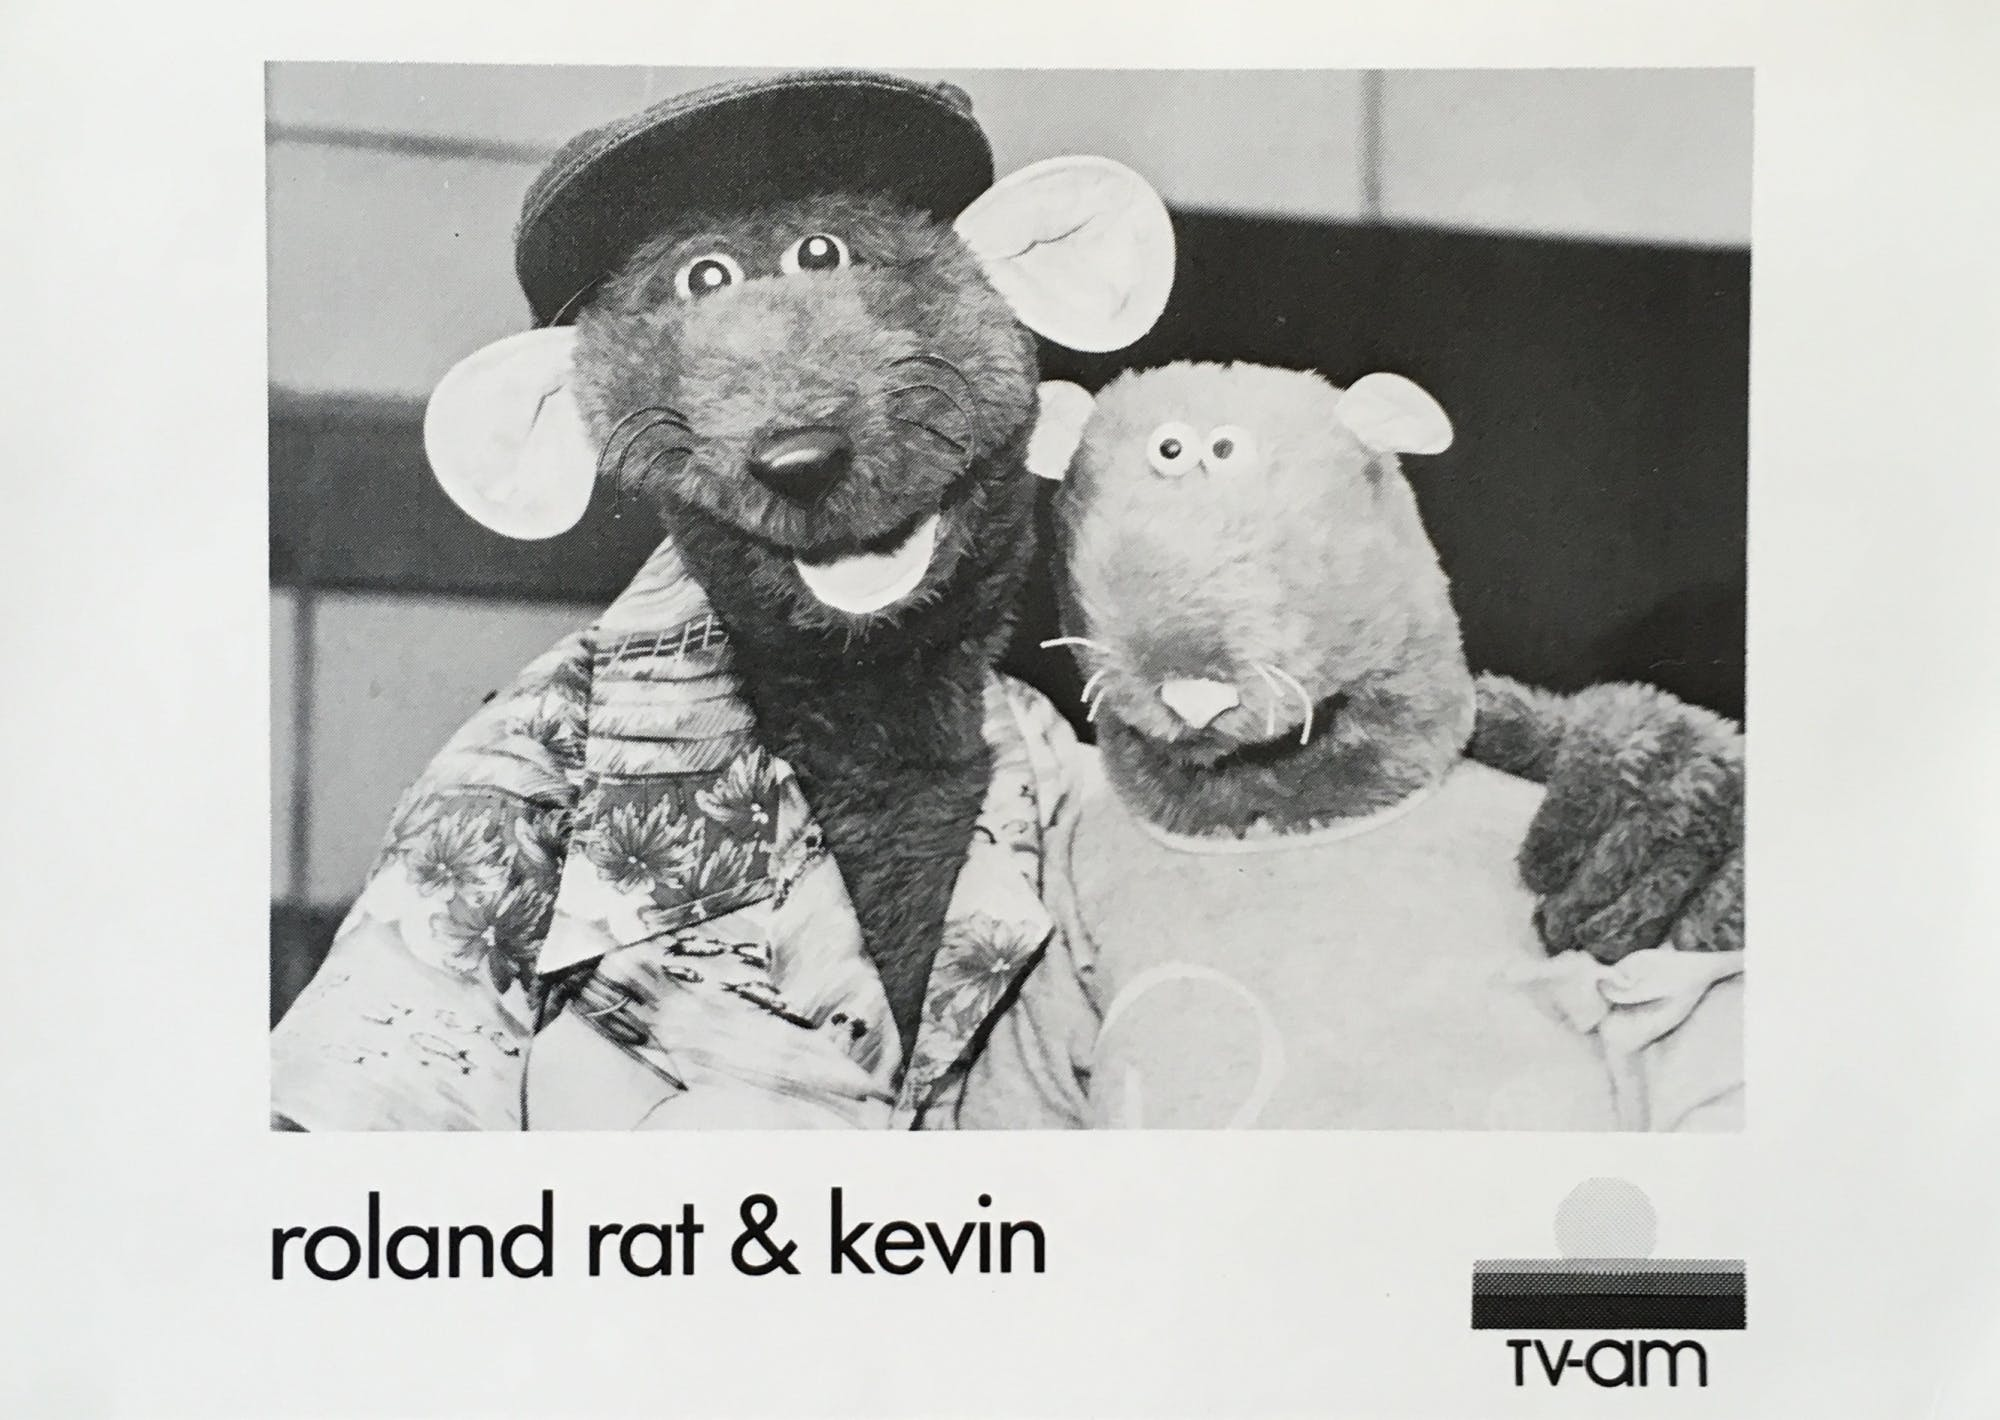 Roland Rat & Kevin the Gerbil